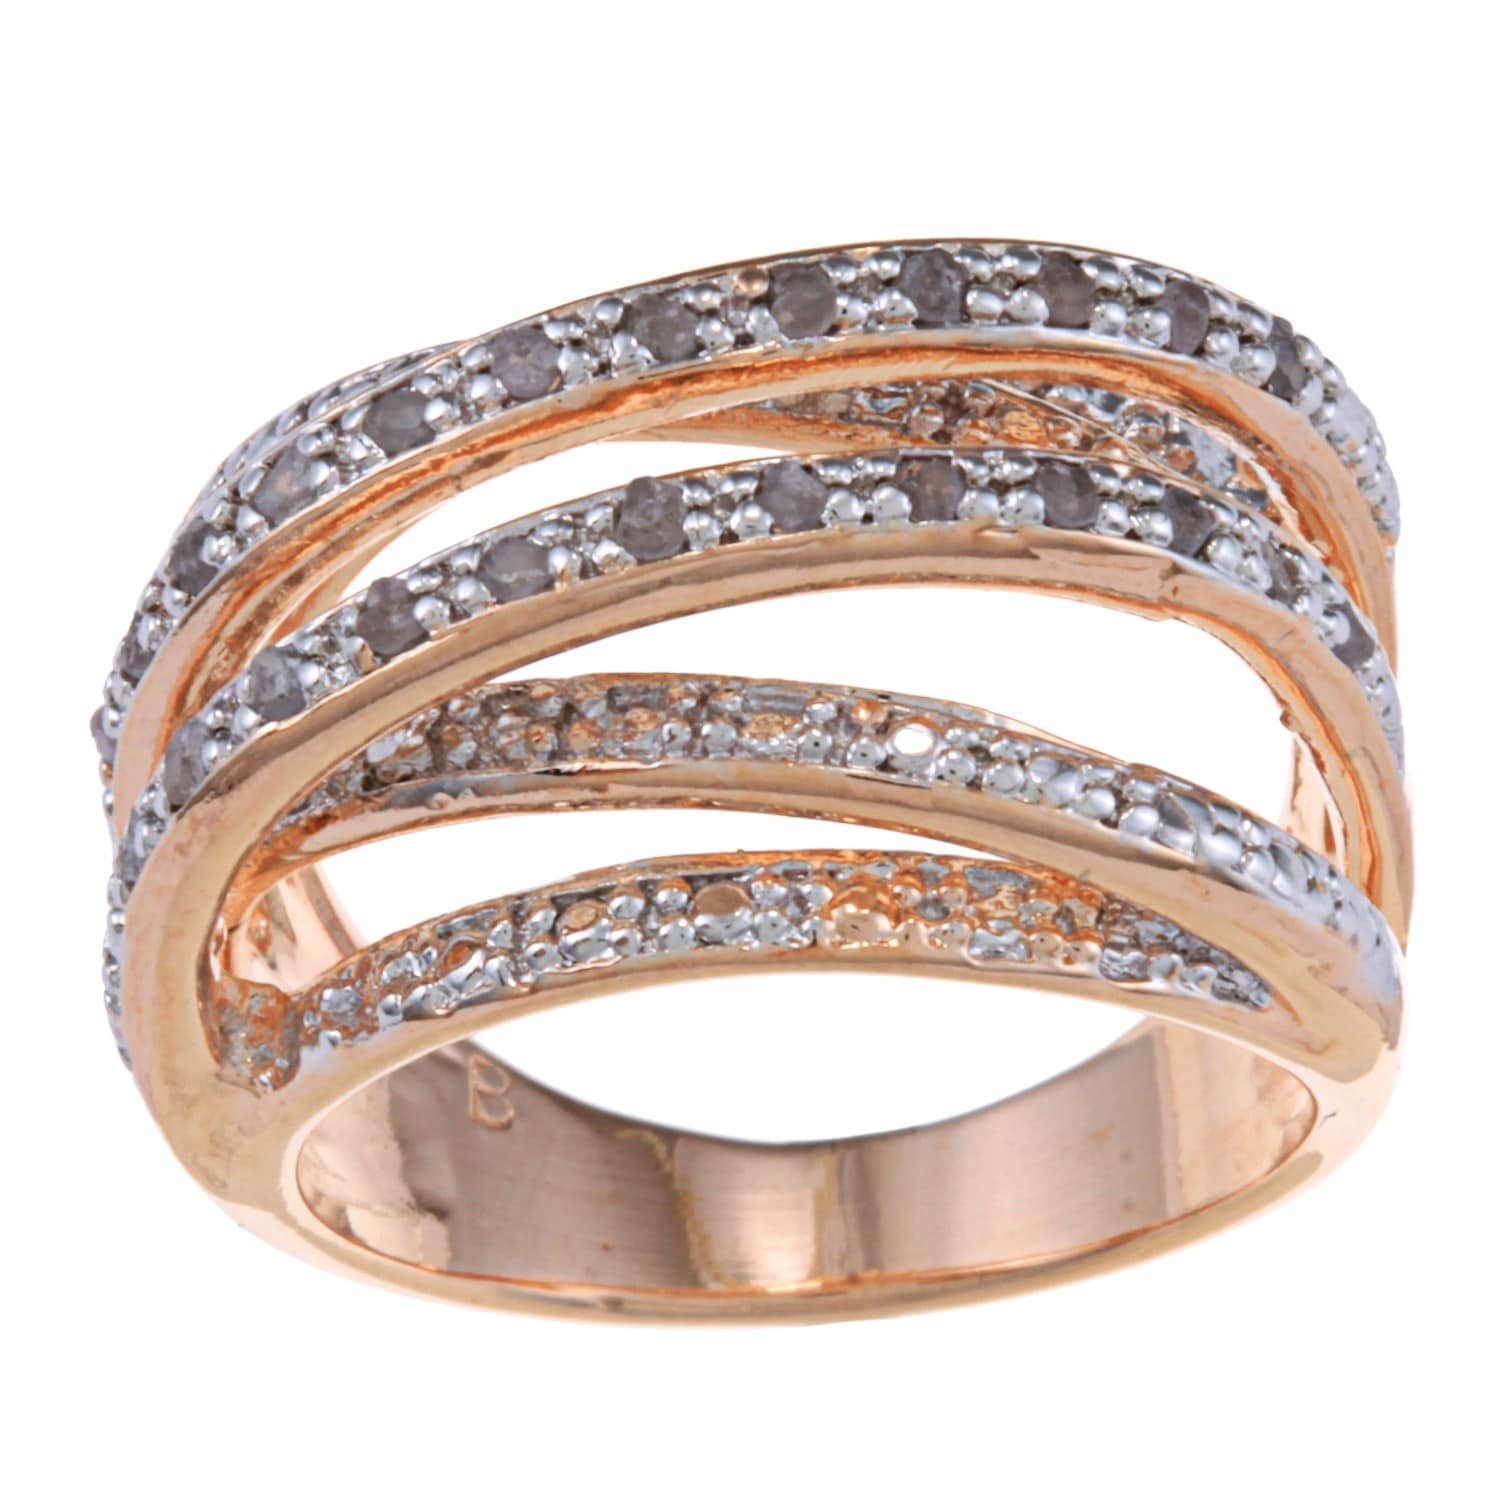 to paris jenny carat diamond new portofino bands range introduces stone exclusive goldsmiths ring collection multi claw platinum collections packham